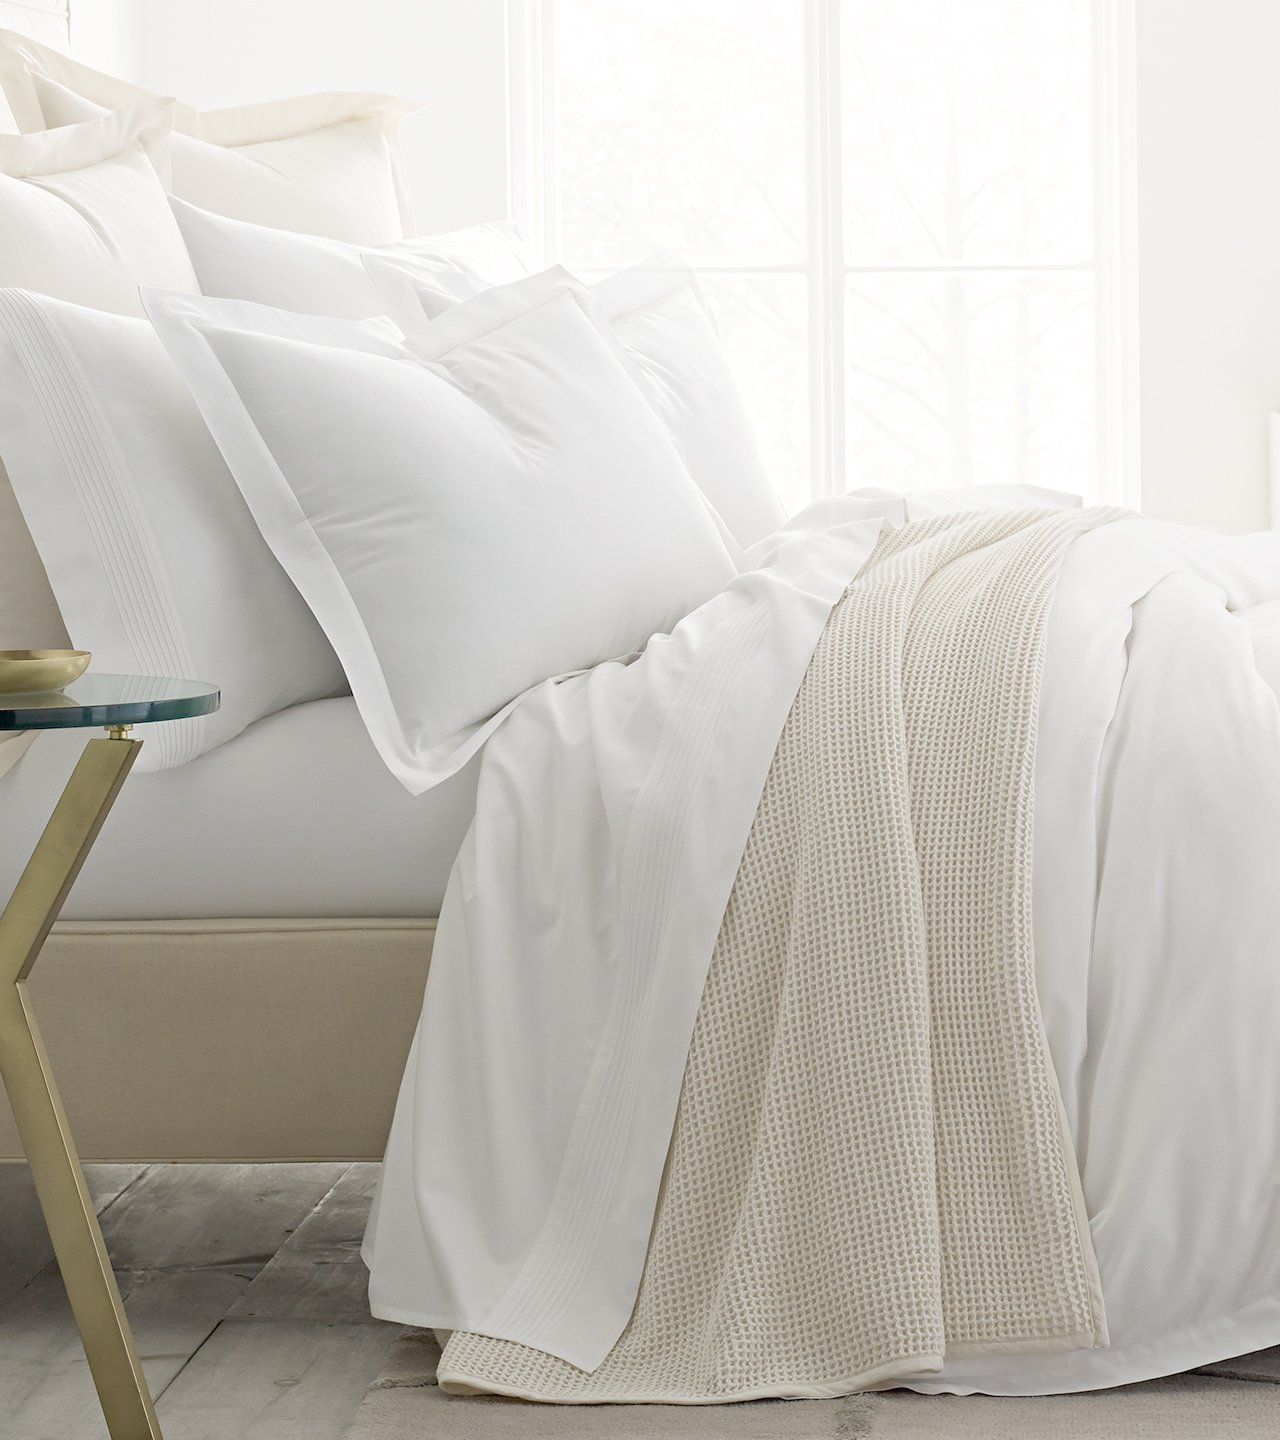 Side profile bed with white sheets